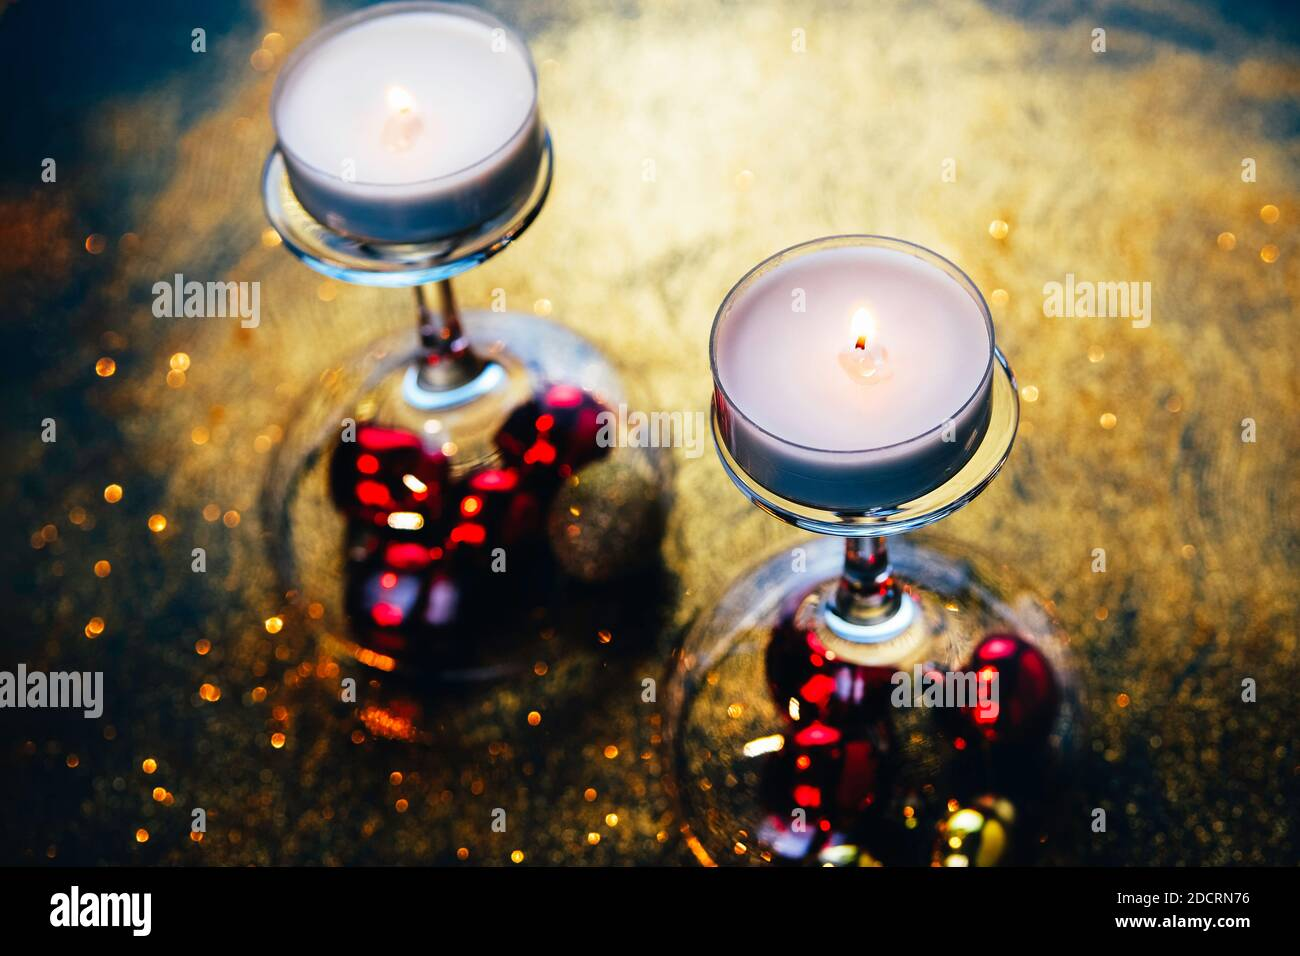 Champagne Coupe Glasses Used As Candle Holders In Christmas Or New Year Interior Design New Ideas Hints And Tips Elements Stock Photo Alamy